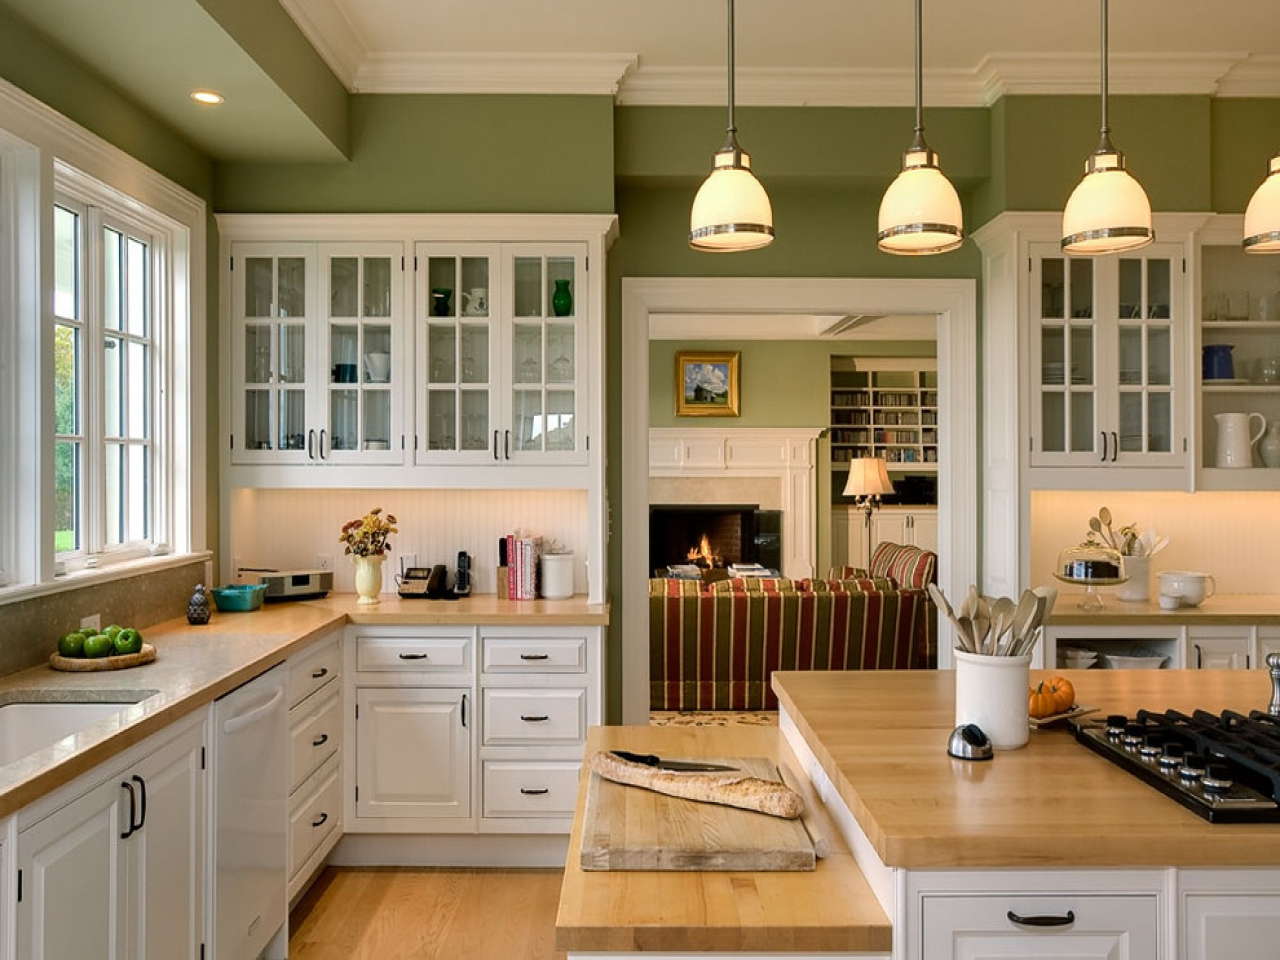 Painted walls - country style kitchen design ideas